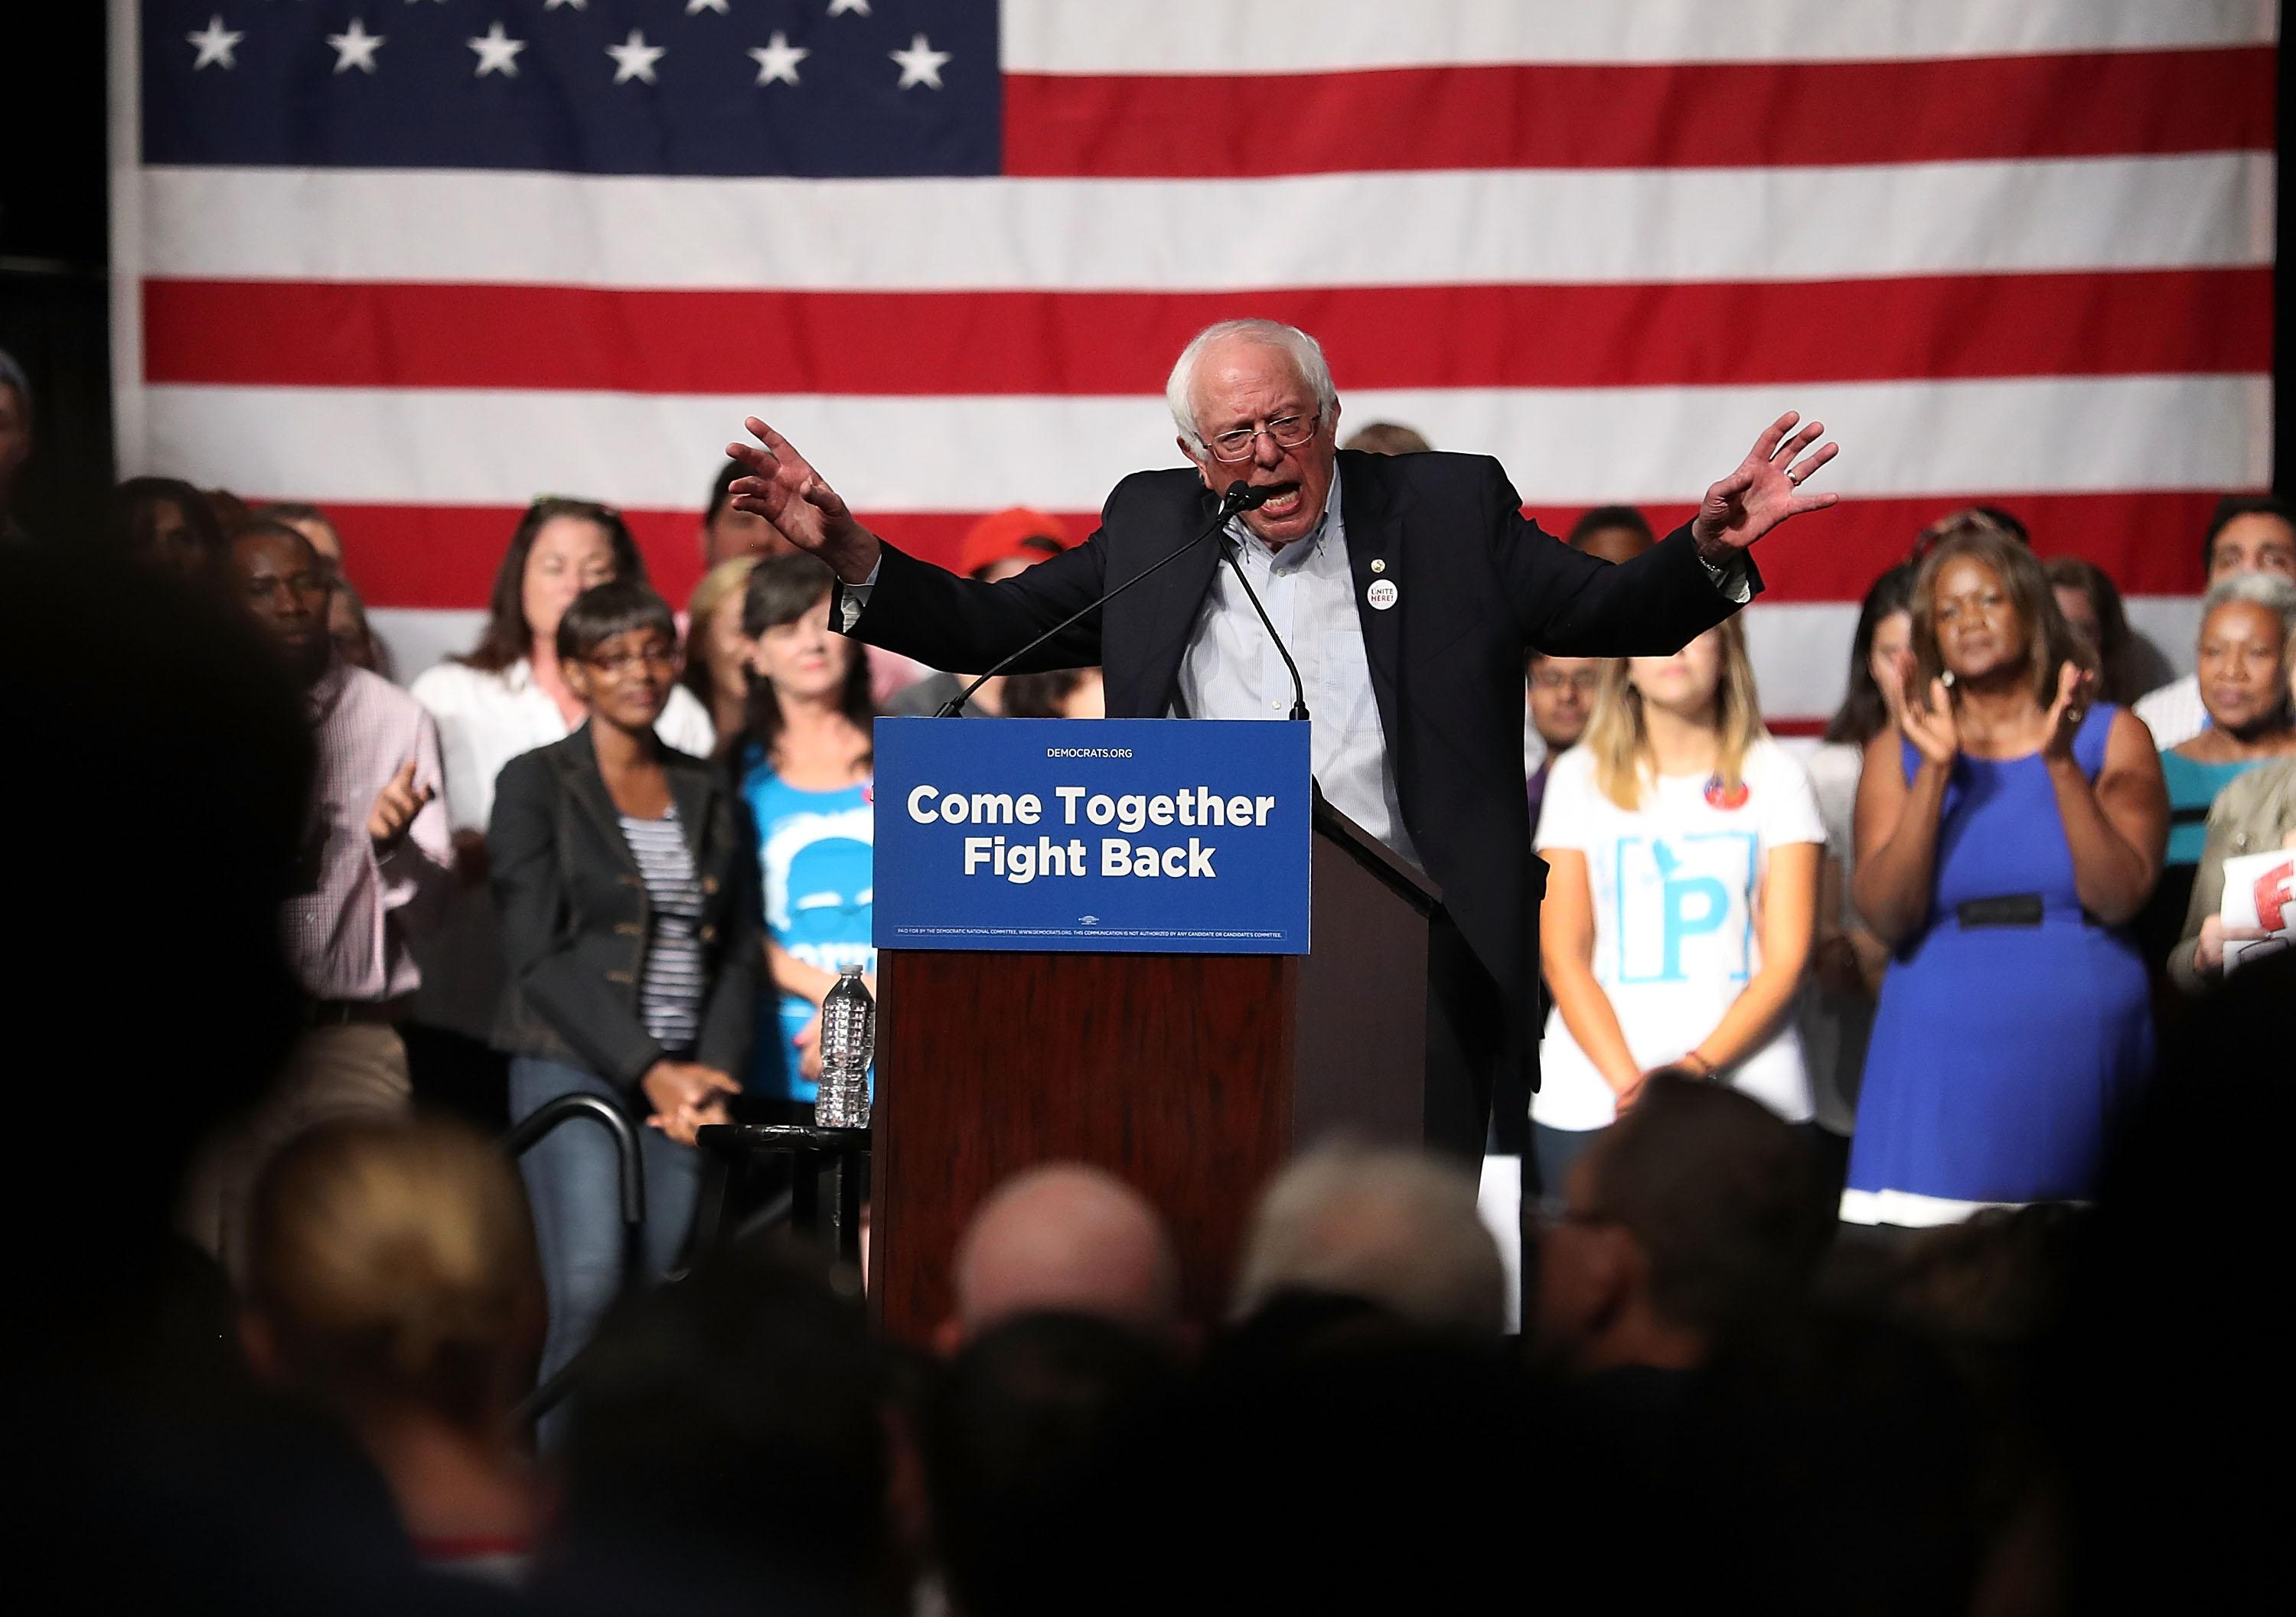 Women's Convention faces backlash after Bernie Sanders lands a prime speaking slot